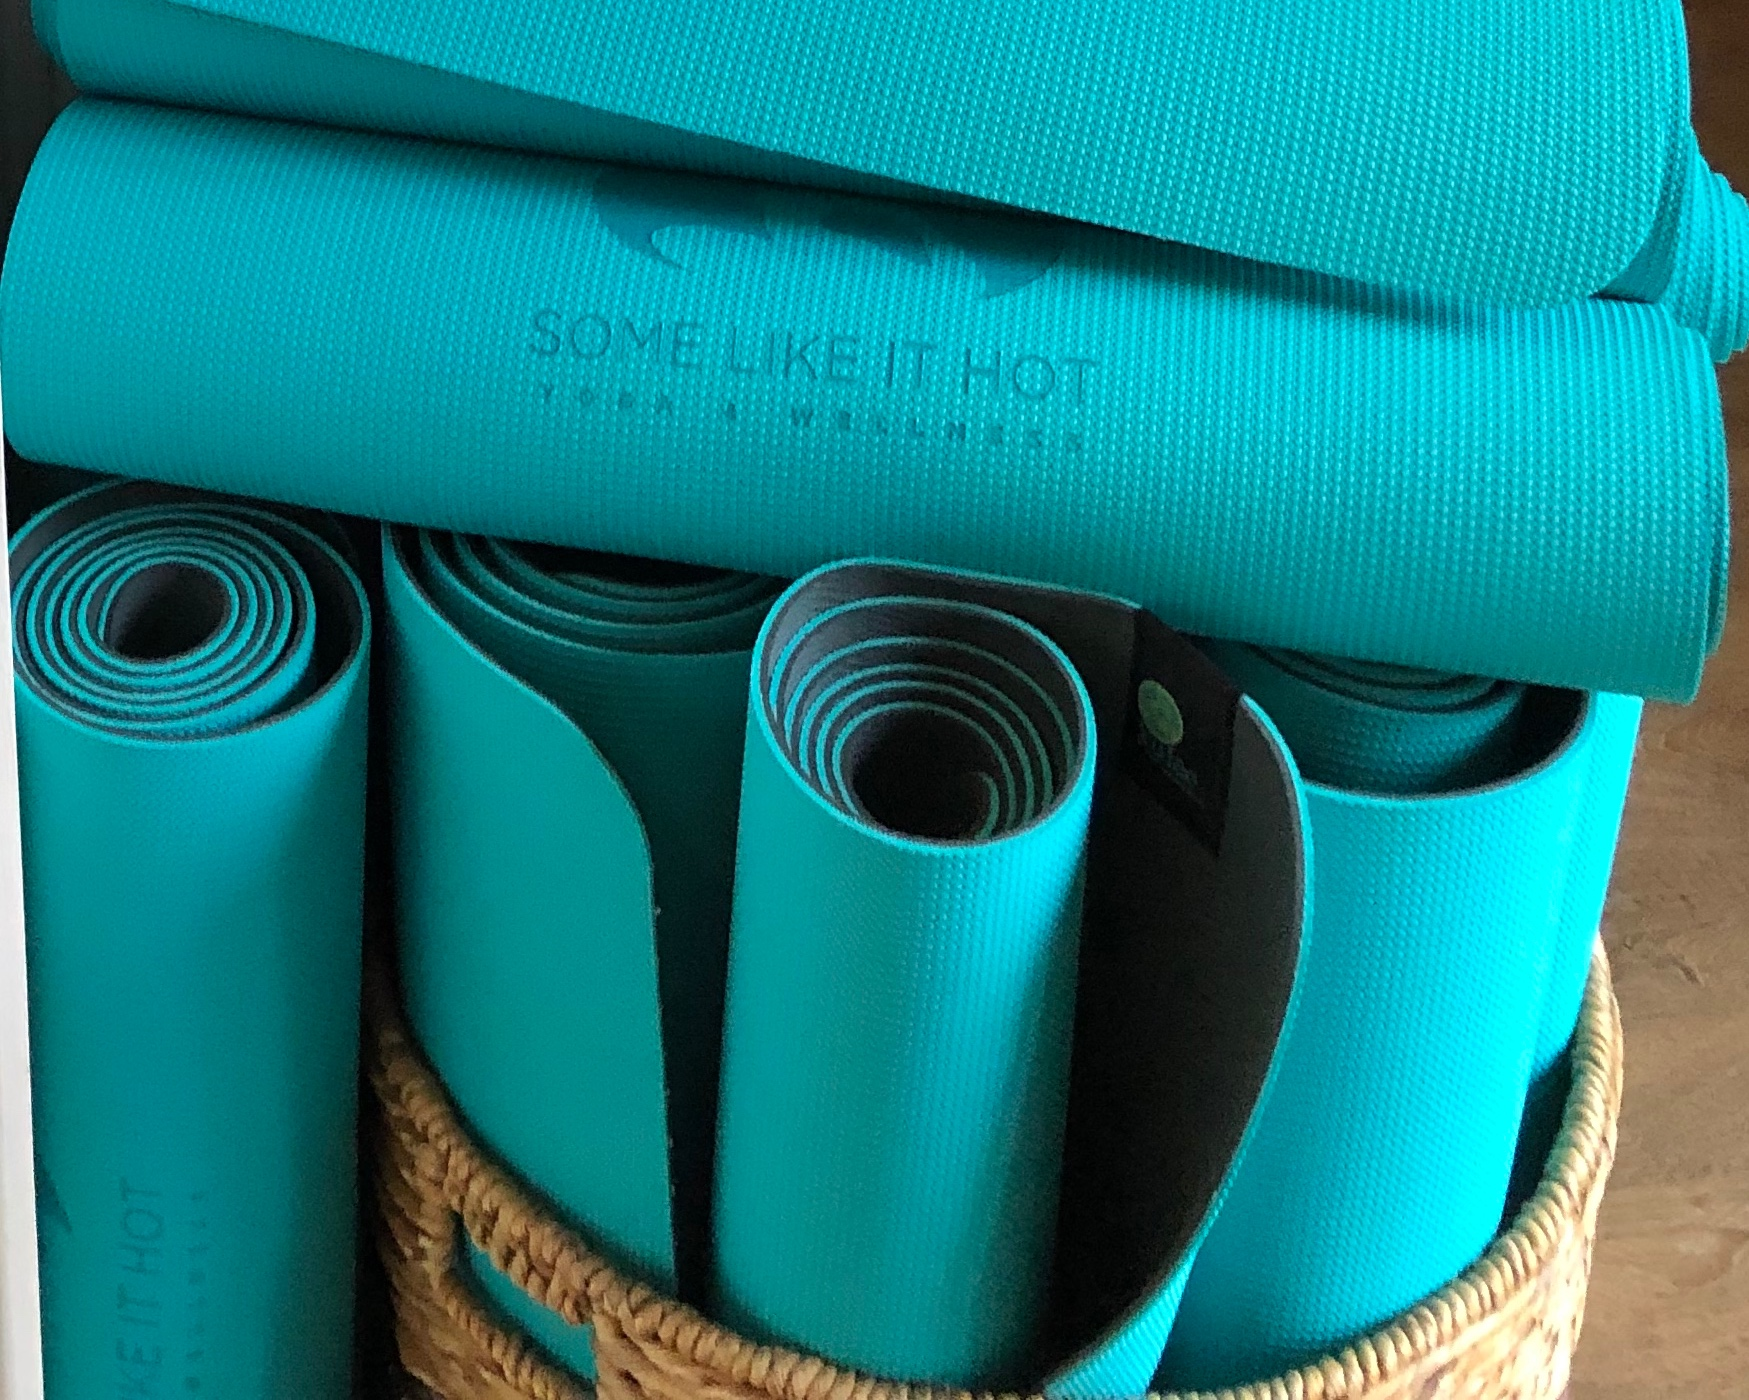 SLIH Yoga Mat   $80 to purchase  $3 to rent